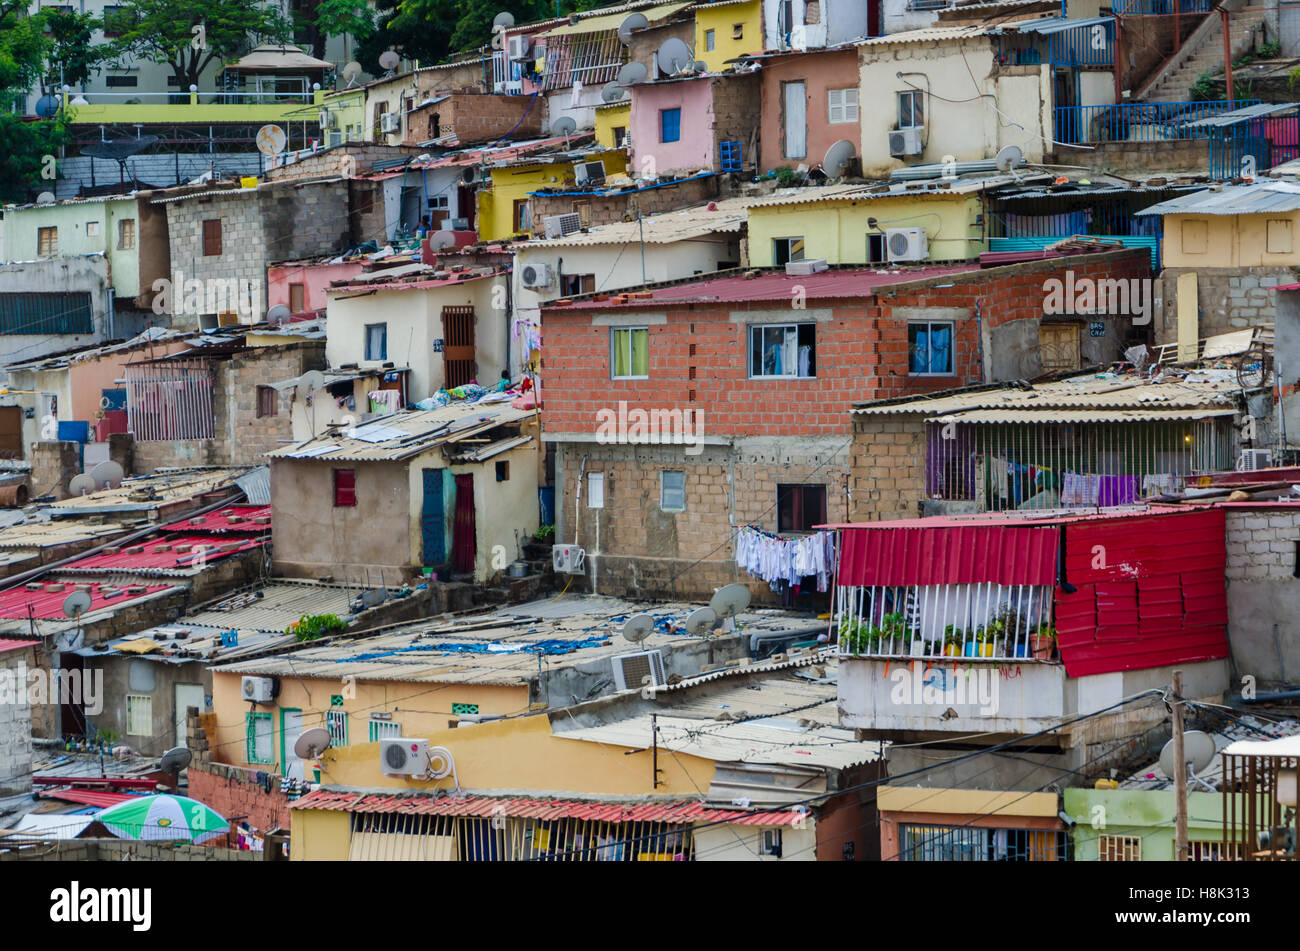 Colorful houses of the poor inhabitants of Luanda, Angola. These ghettos resemble Brasilian favelas. - Stock Image